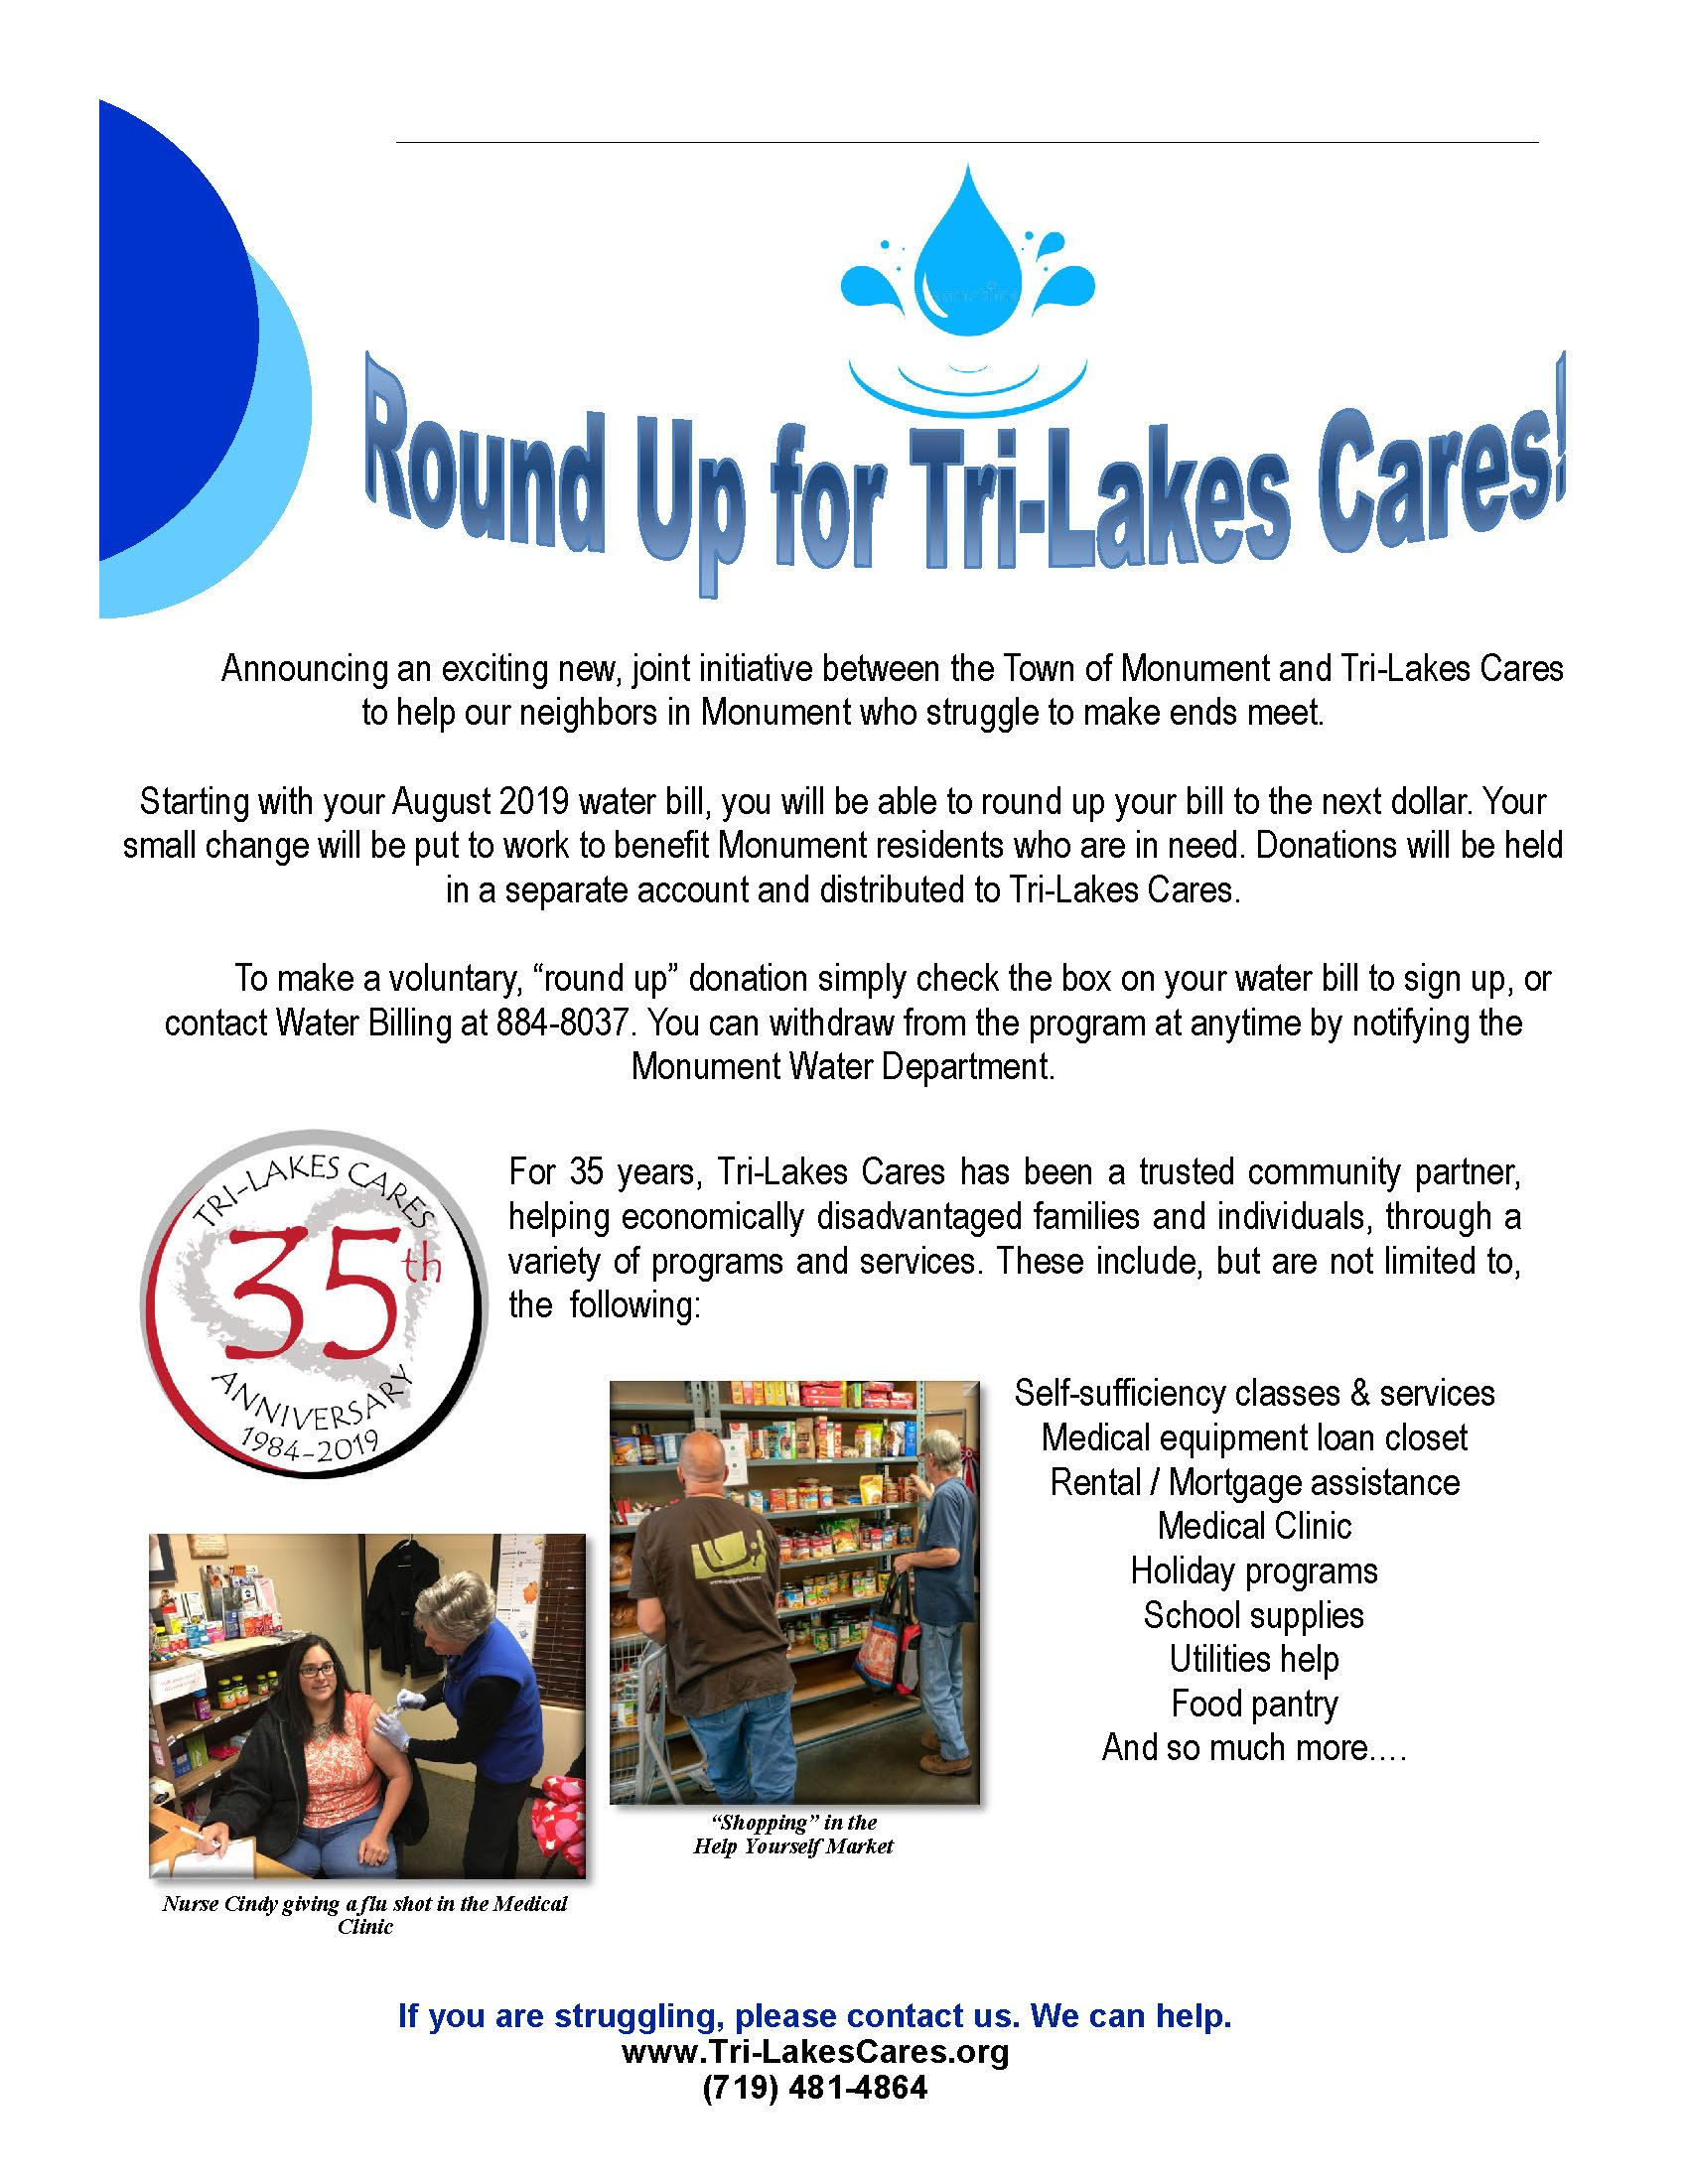 round up for tri lakes cares